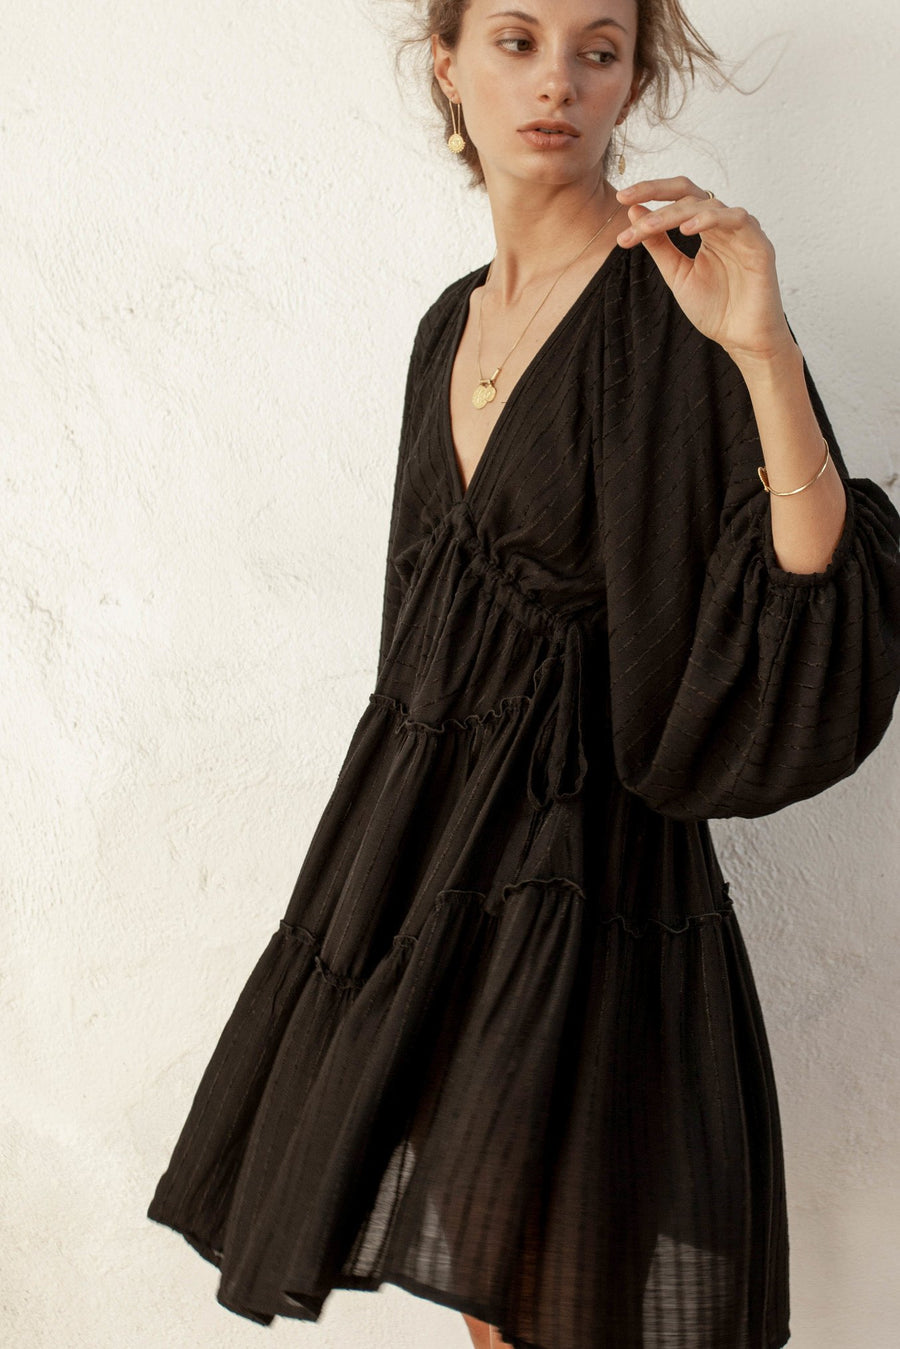 Oleander Smock Dress - Black - Linen Blend Stripe